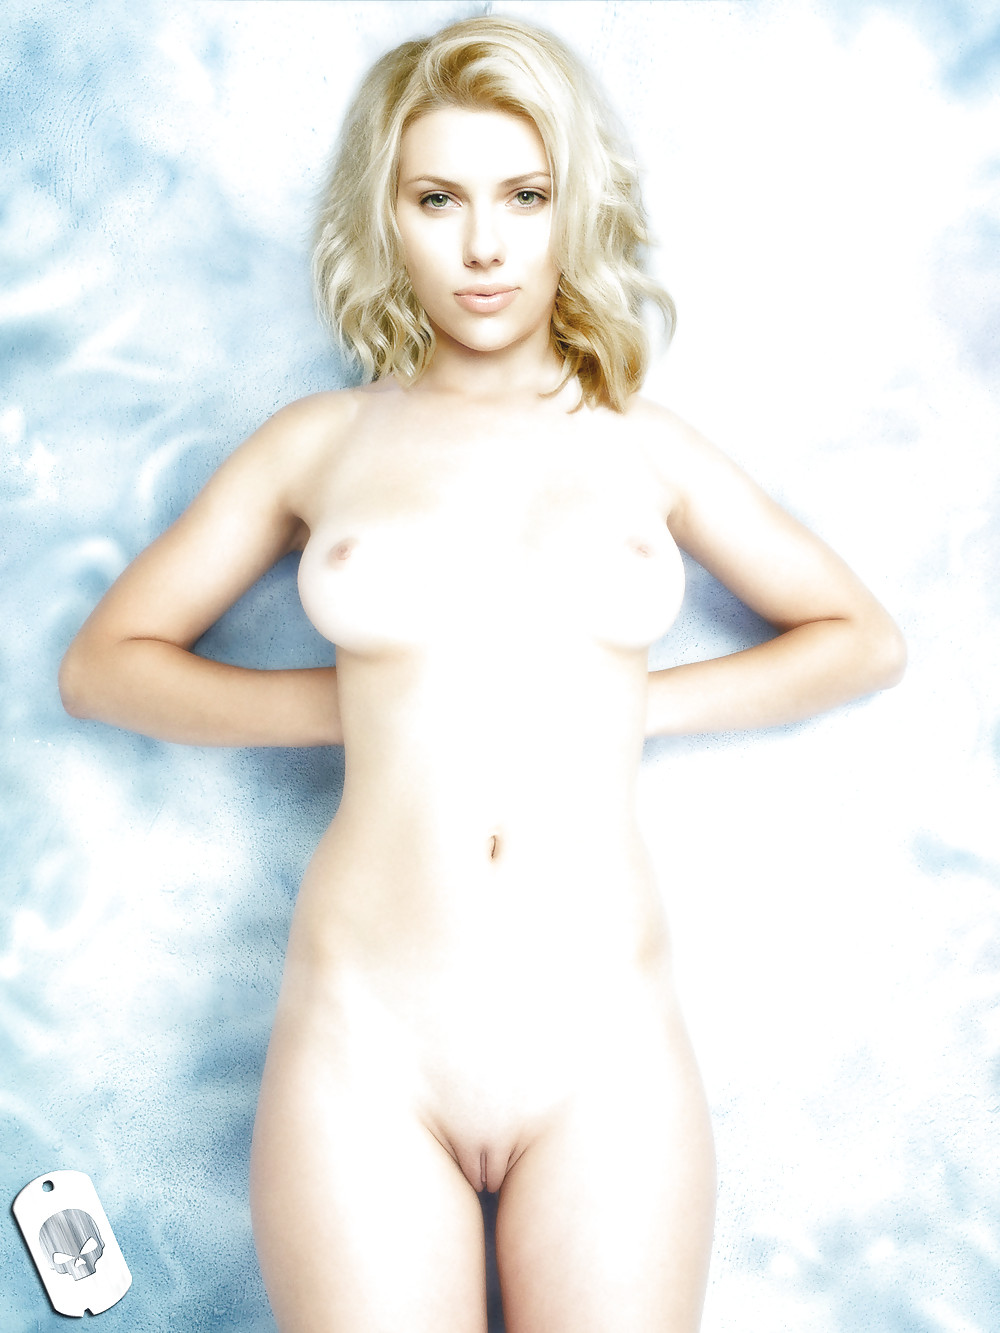 Scarlett johansson high paid topless nudes